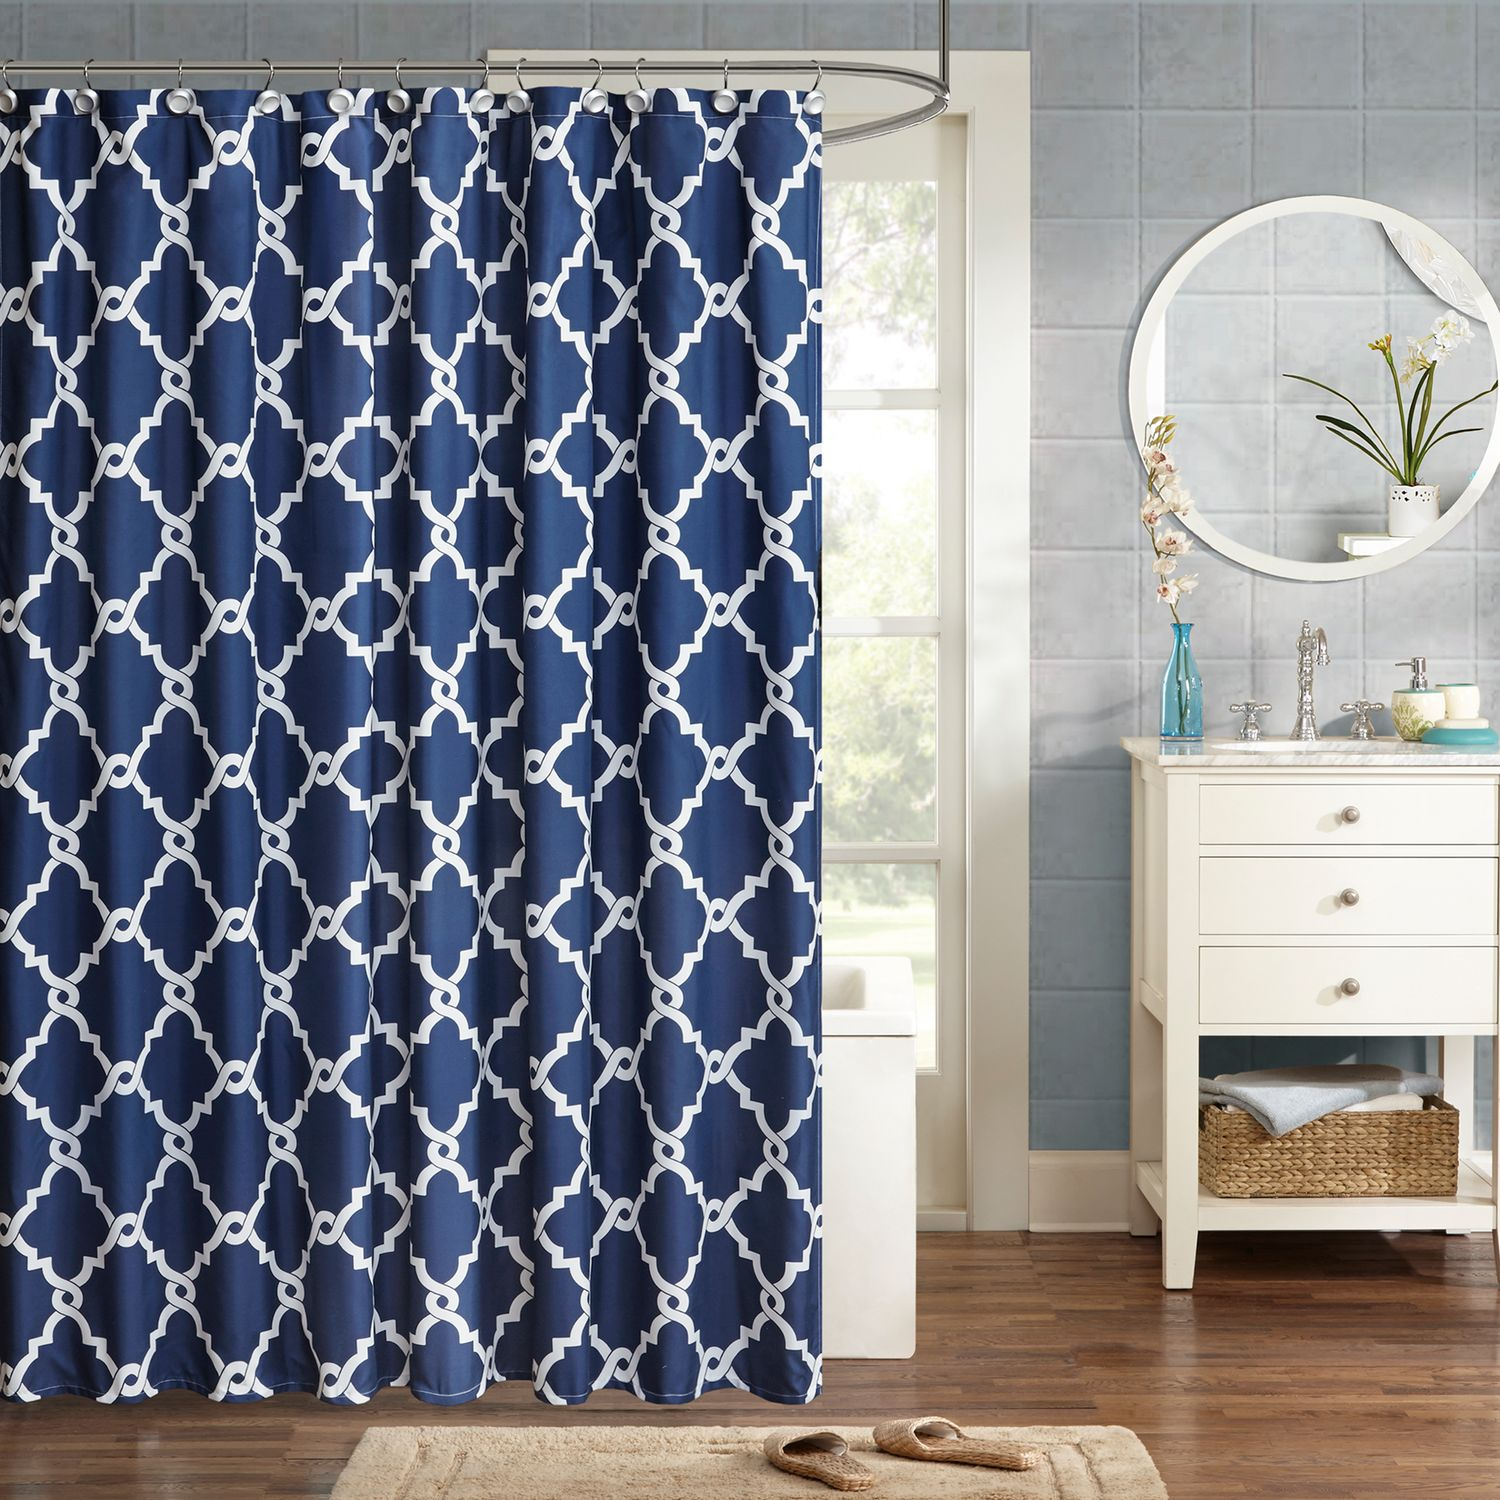 Ordinaire Madison Park Essentials Almaden Shower Curtain